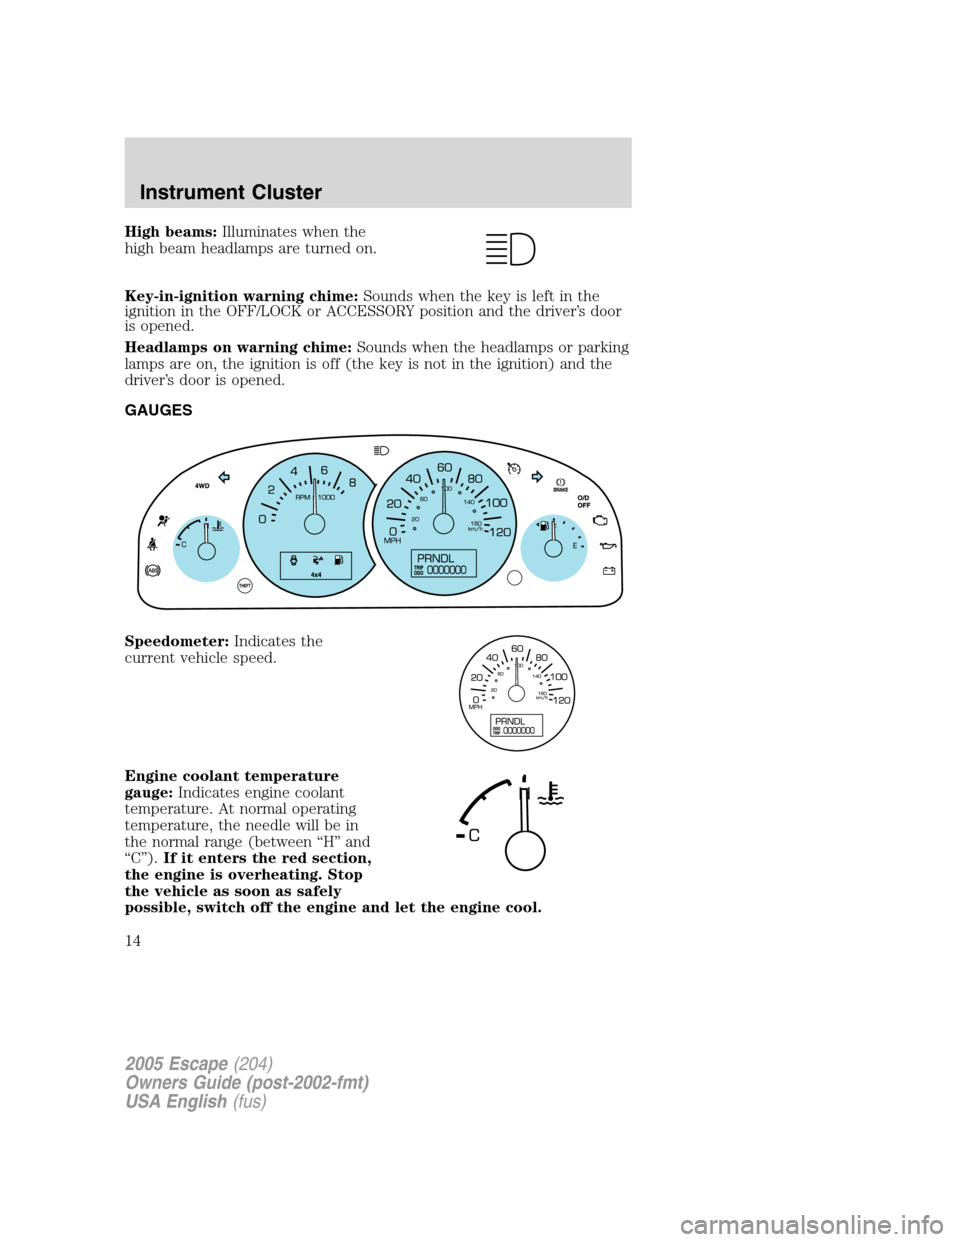 Ford escape 2005 1 g owners manual page 14